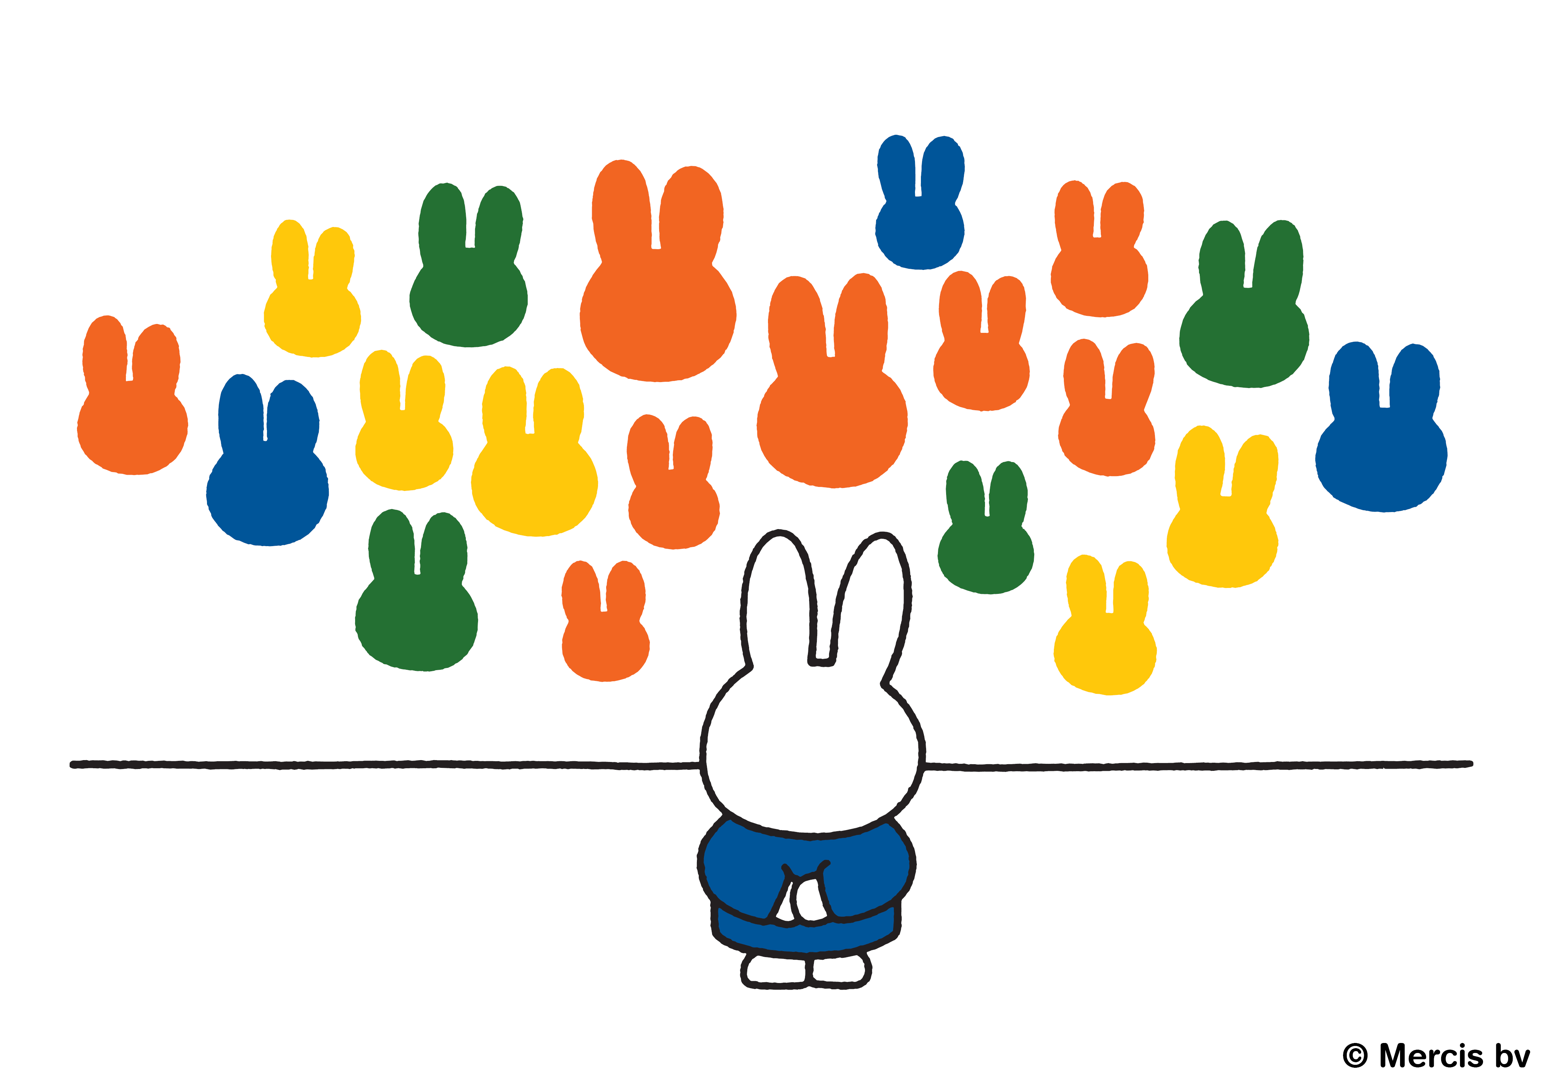 Bunjil Place Gallery proudly welcomes iconic design exhibition miffy & friends this autumn image